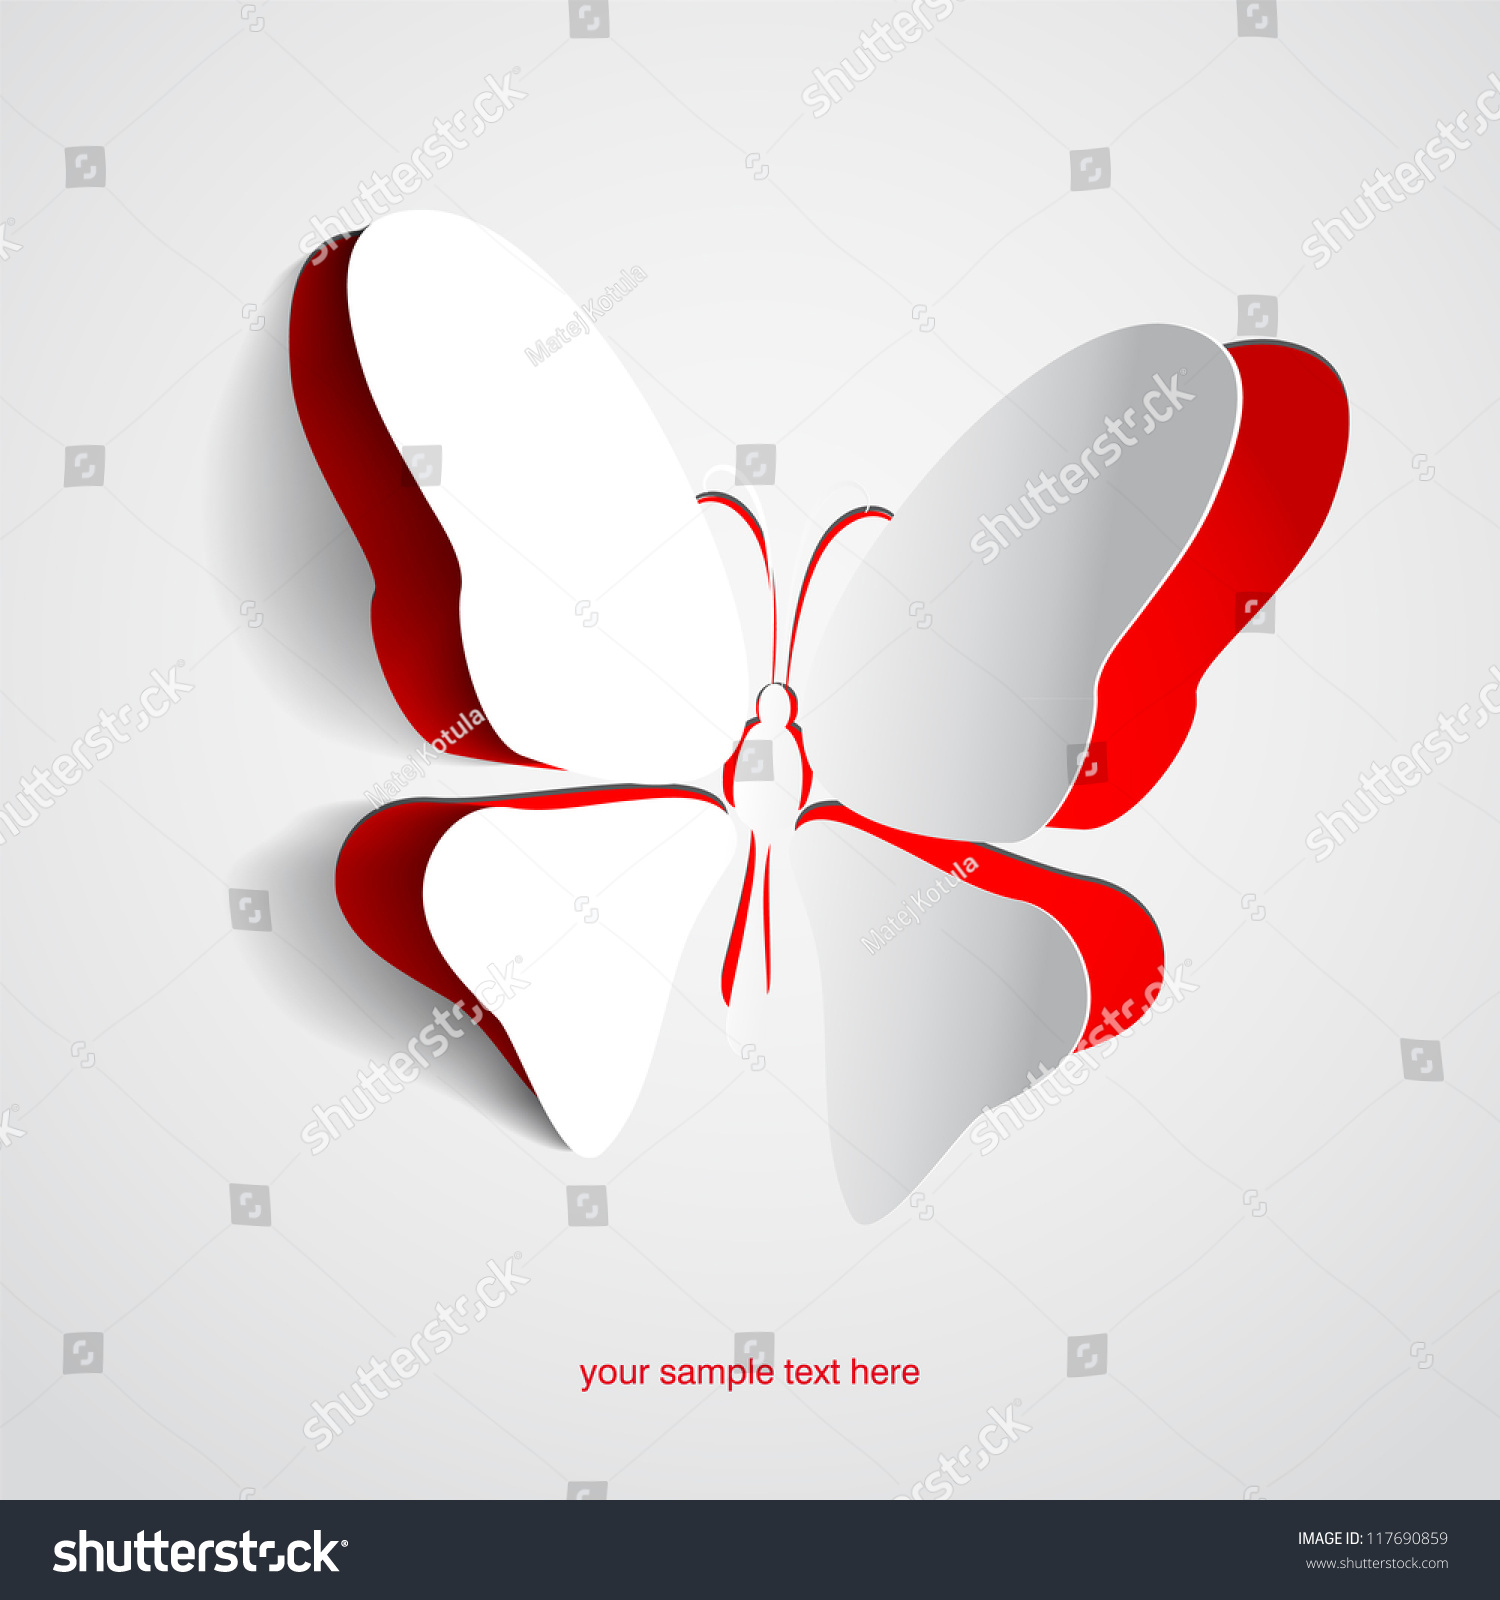 butterfly essay Butterflies are one of the most beautiful of all insects there are about 15,000 to 20,000 species the word butterfly comes from the old english word butterfleoge.